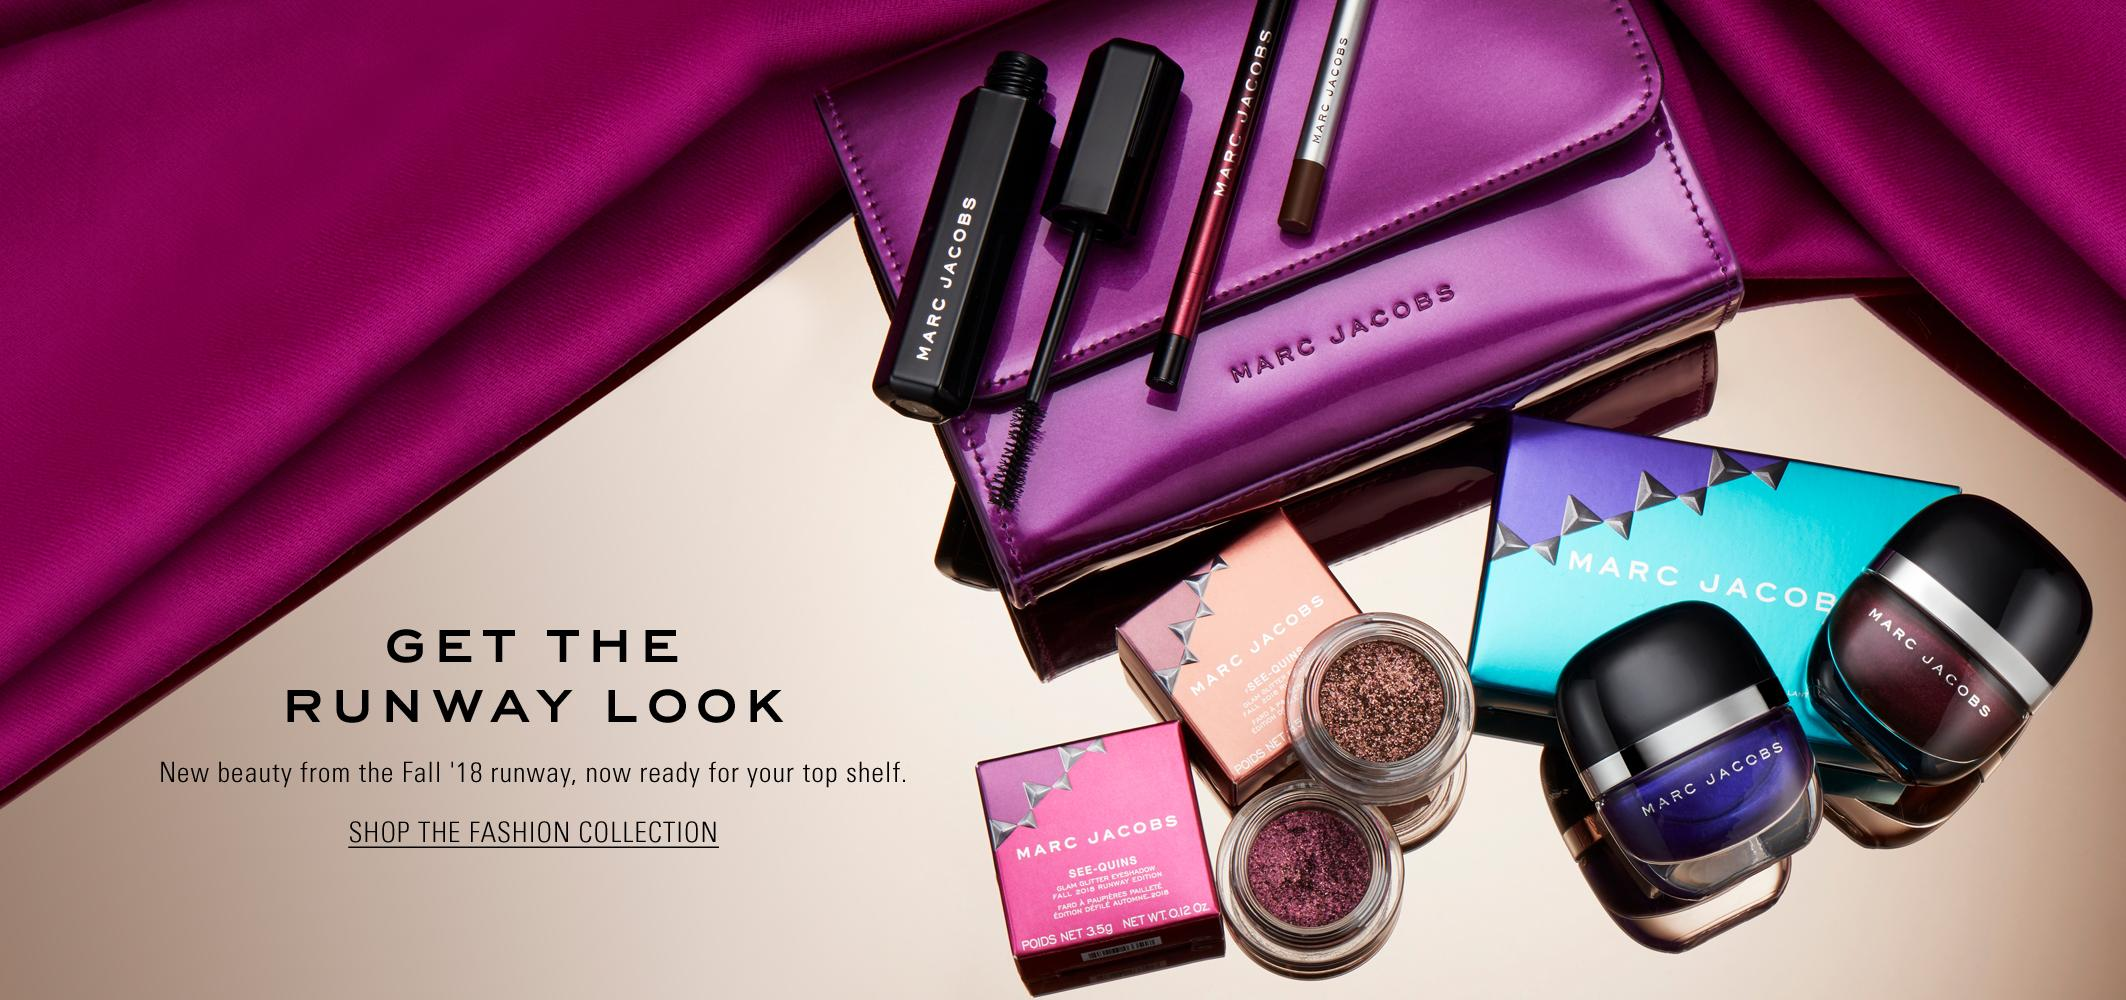 Jacobs marc beauty holiday makeup collection best photo